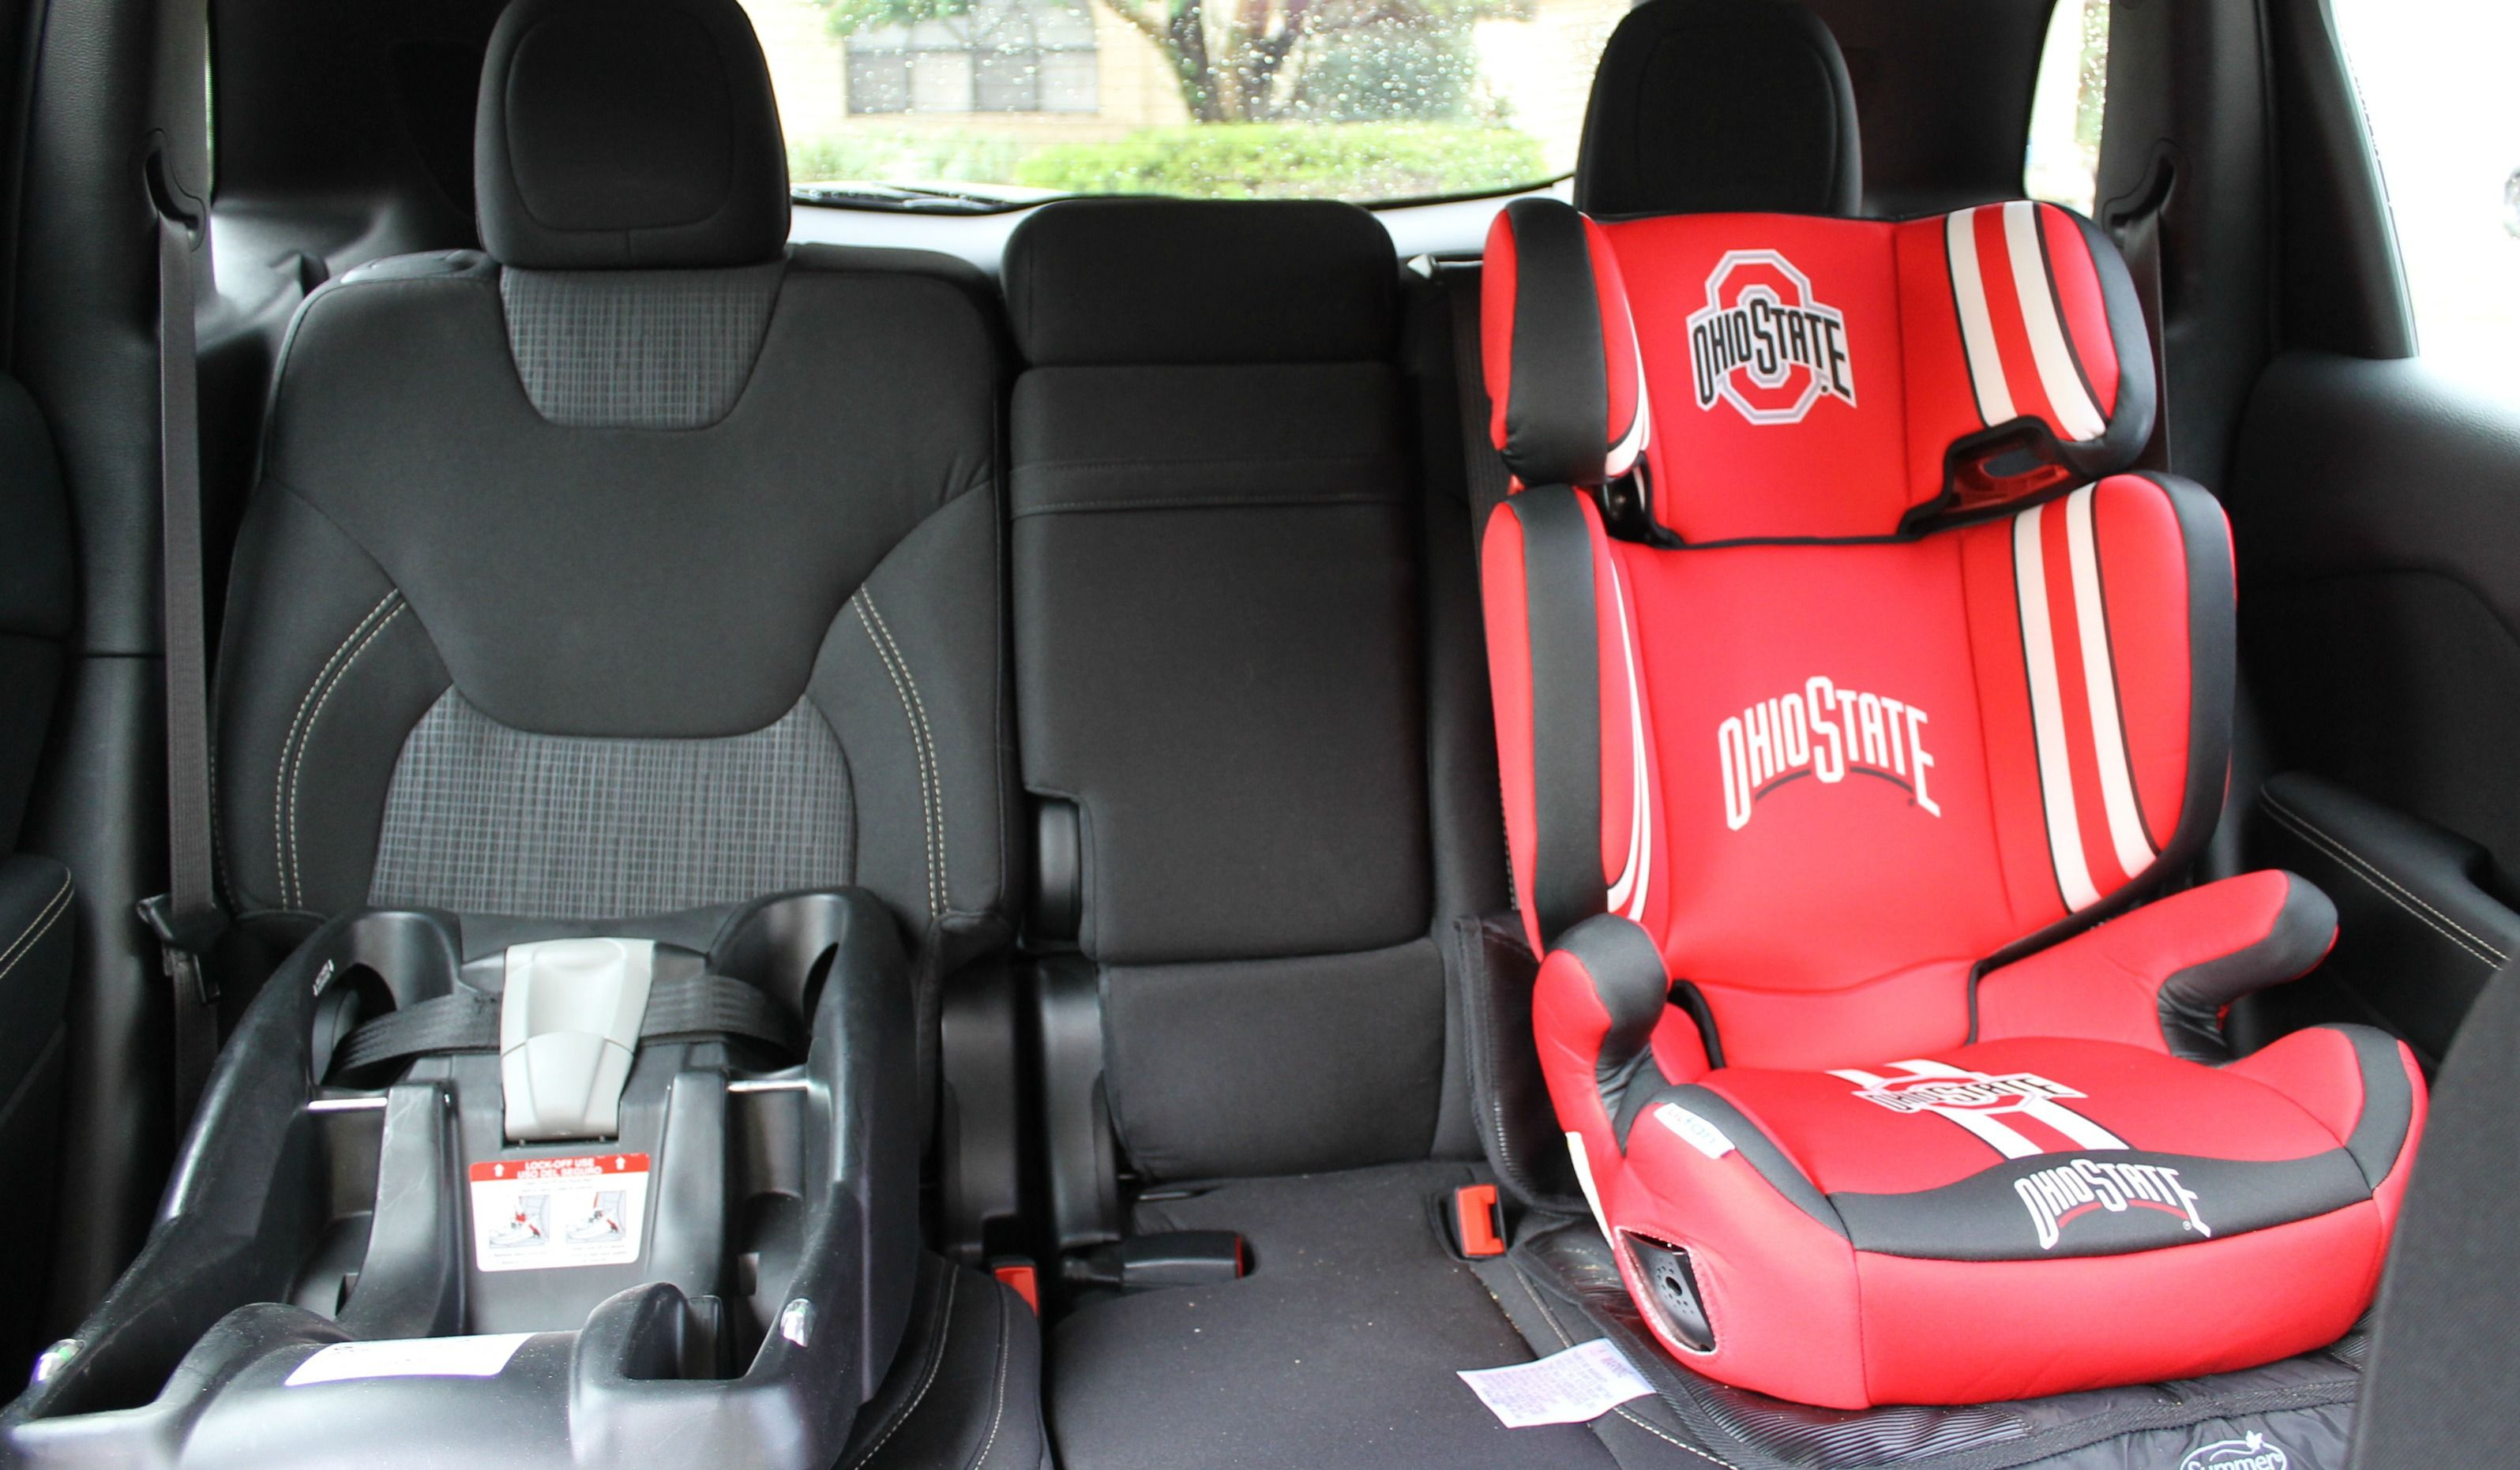 Lil Fan Ohio State Booster Seat For Kids Has A Wide Selection Of Sports Themed Seats Perfect Your Little